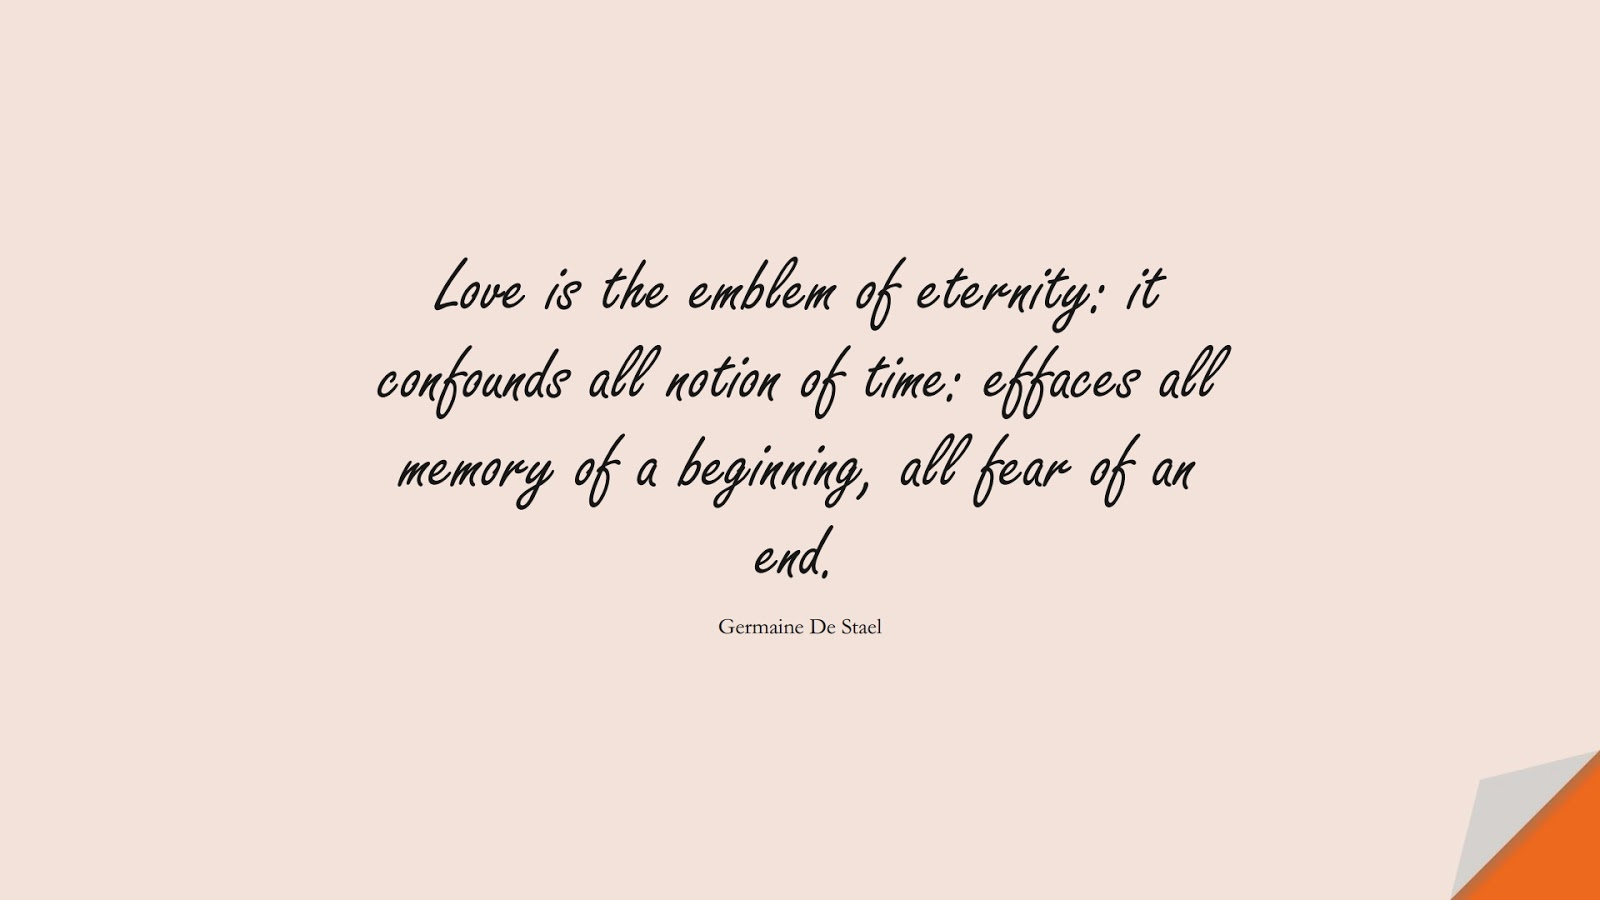 Love is the emblem of eternity: it confounds all notion of time: effaces all memory of a beginning, all fear of an end. (Germaine De Stael);  #LoveQuotes